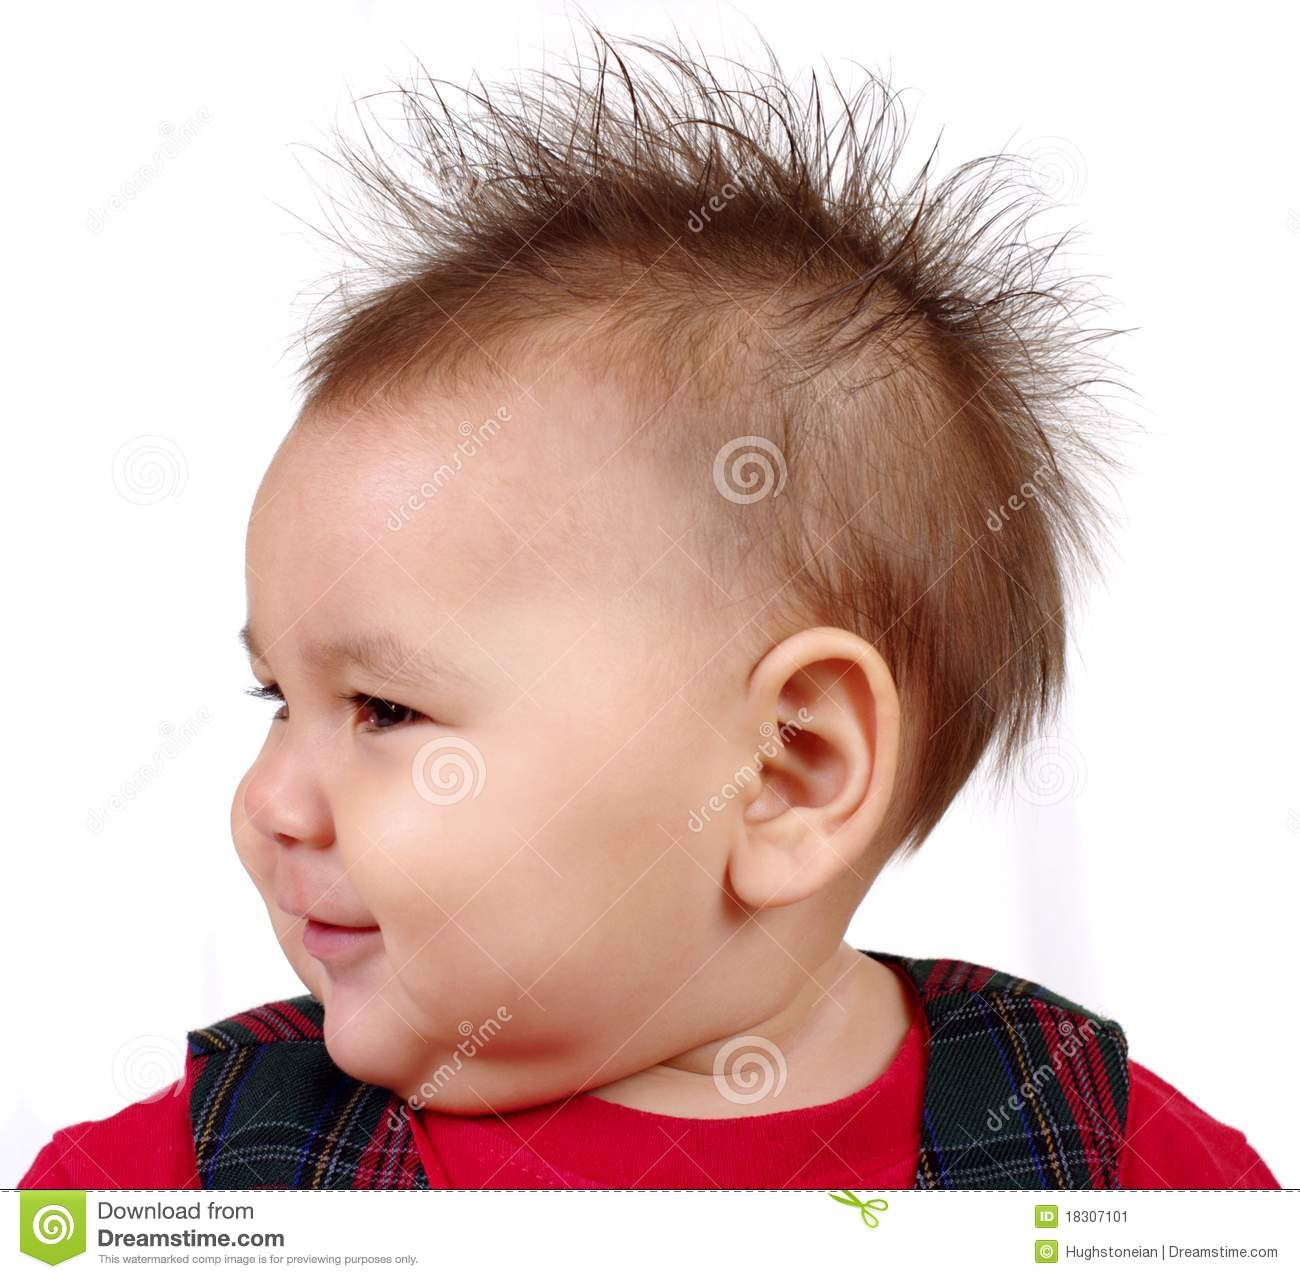 Kid With Spiked Hair Stock Image Image Of Person Girl